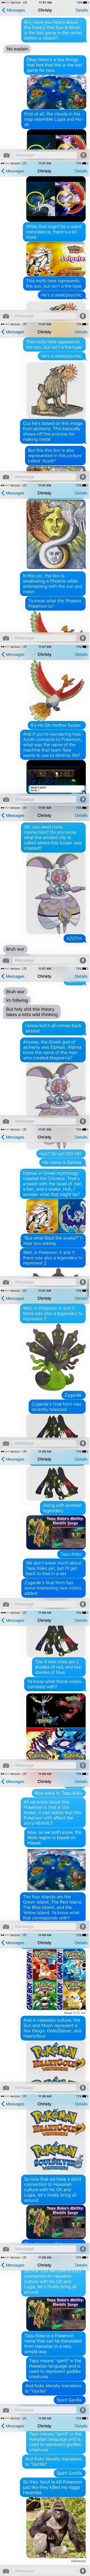 This Pokemon Theory Is Mind Bending. Wow. Just Wow